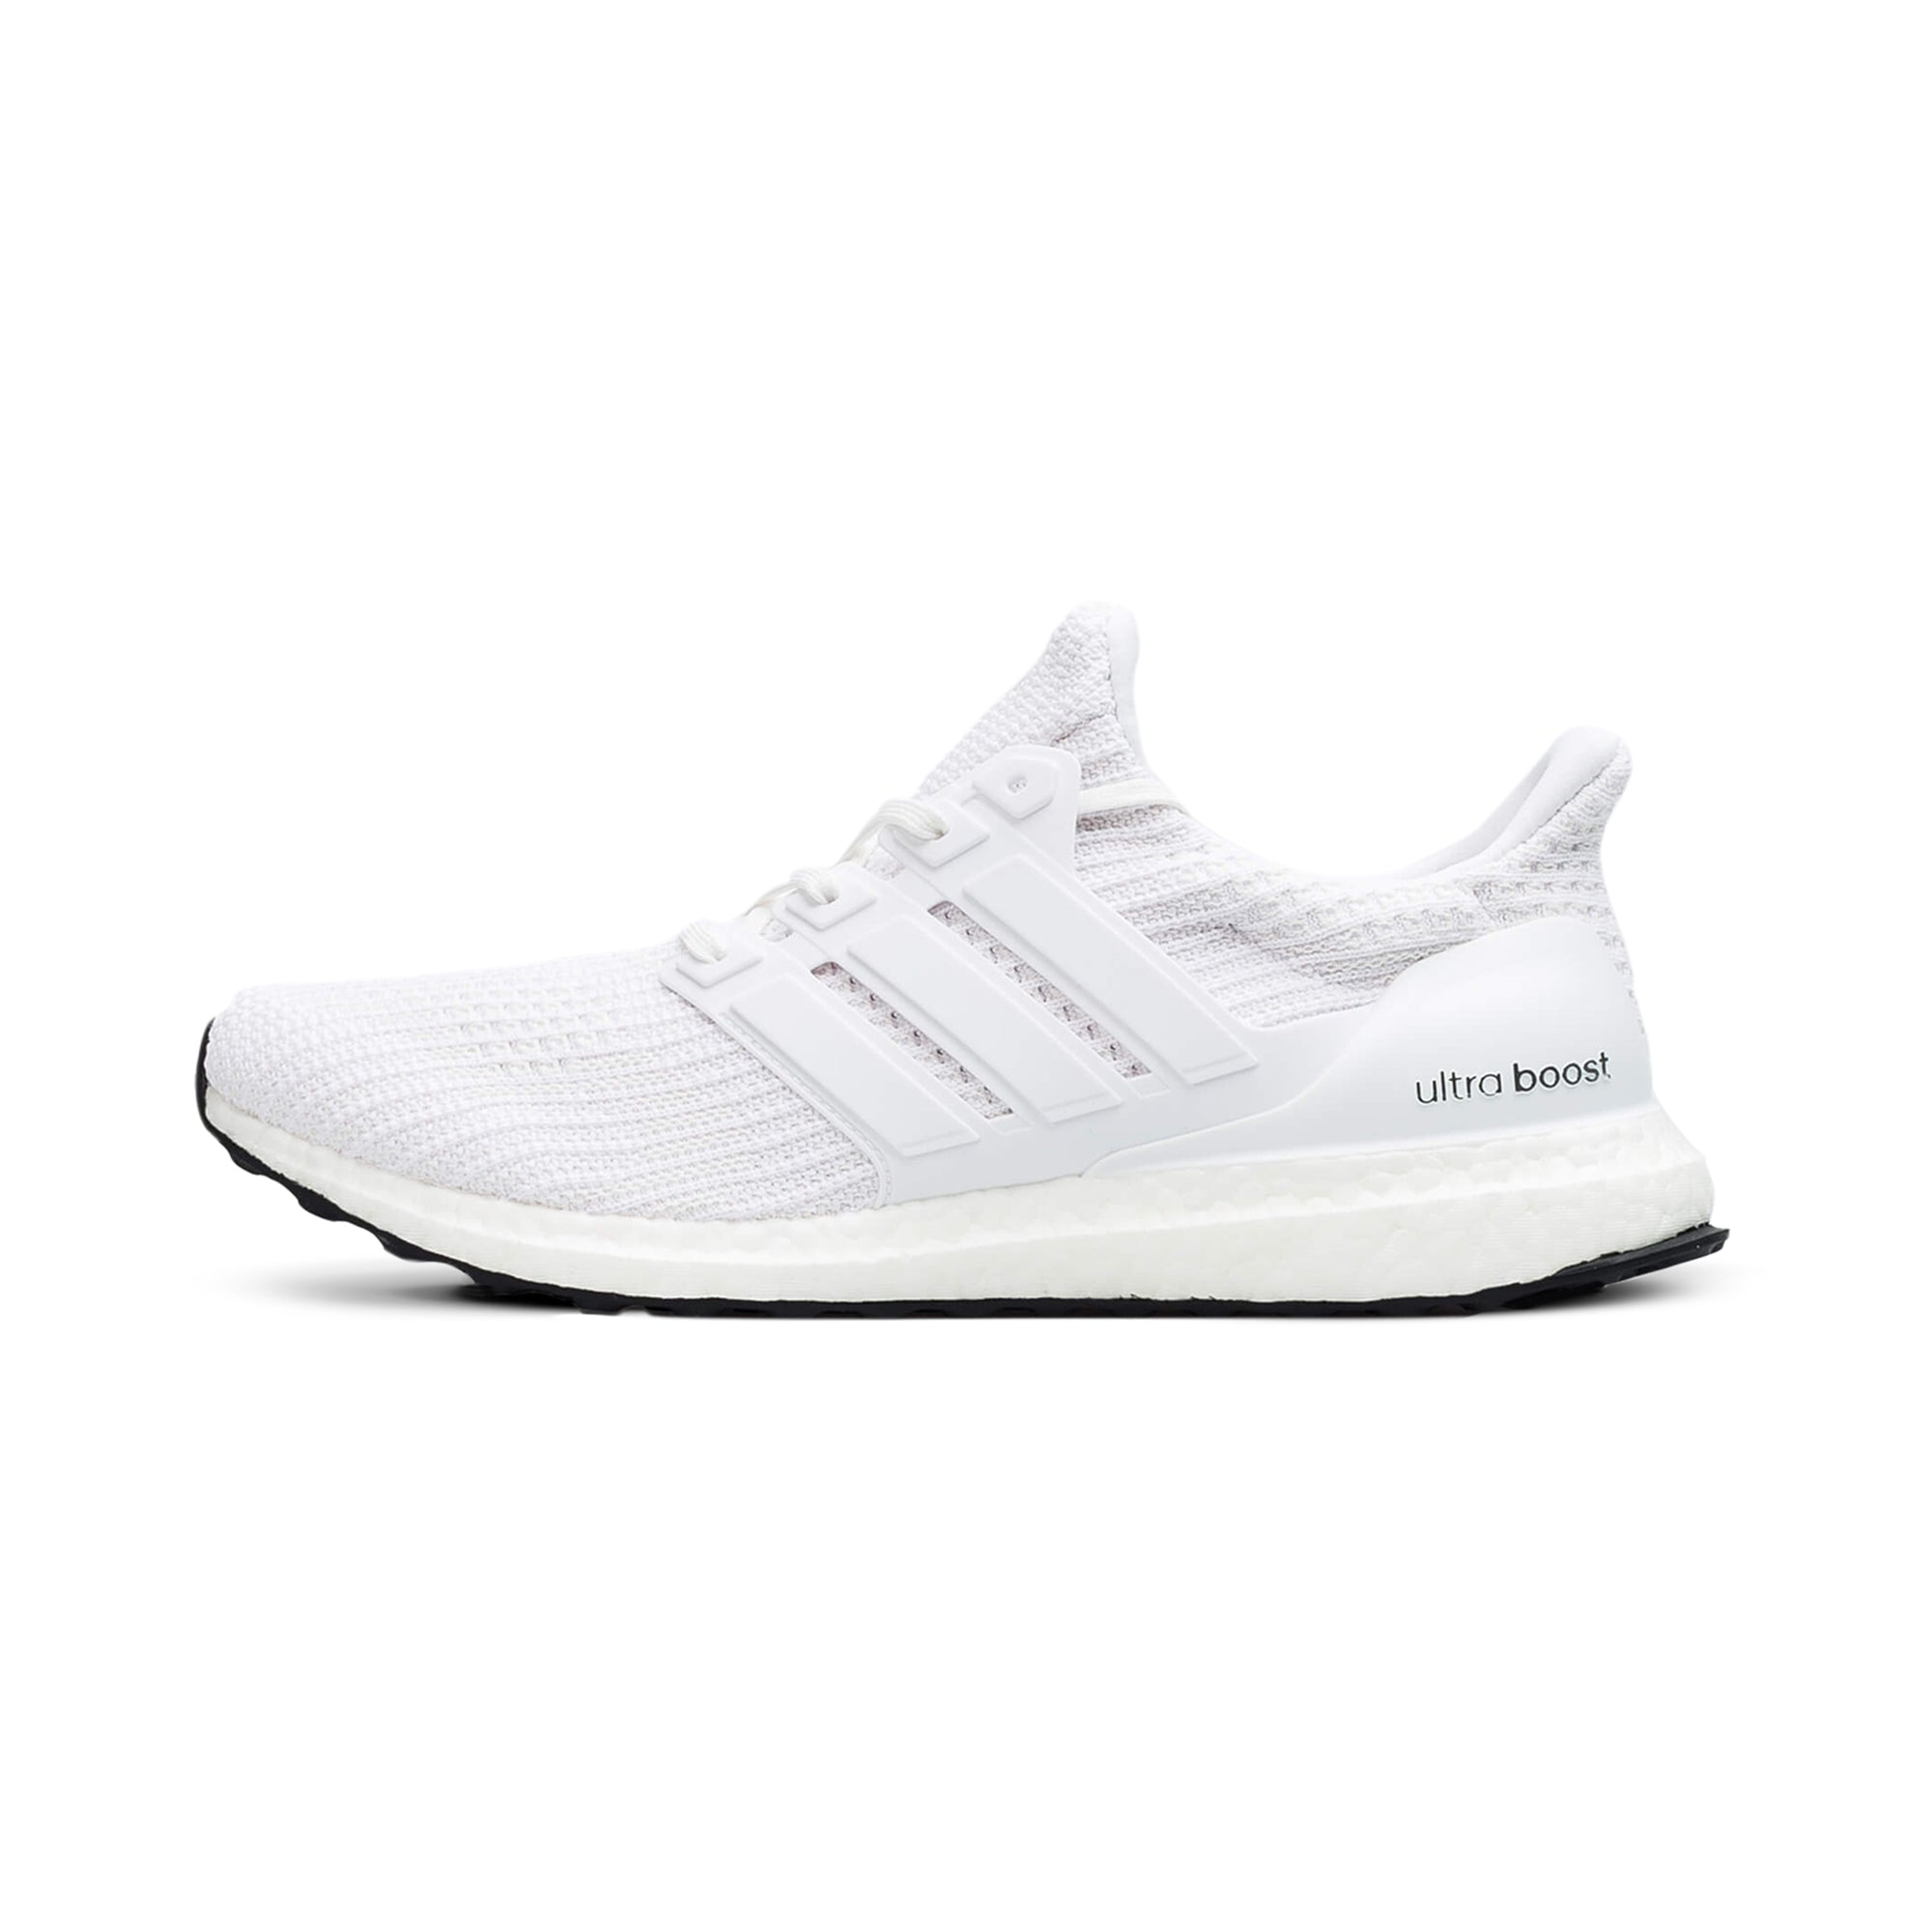 [BB6168] Mens Adidas UltraBOOST 4.0